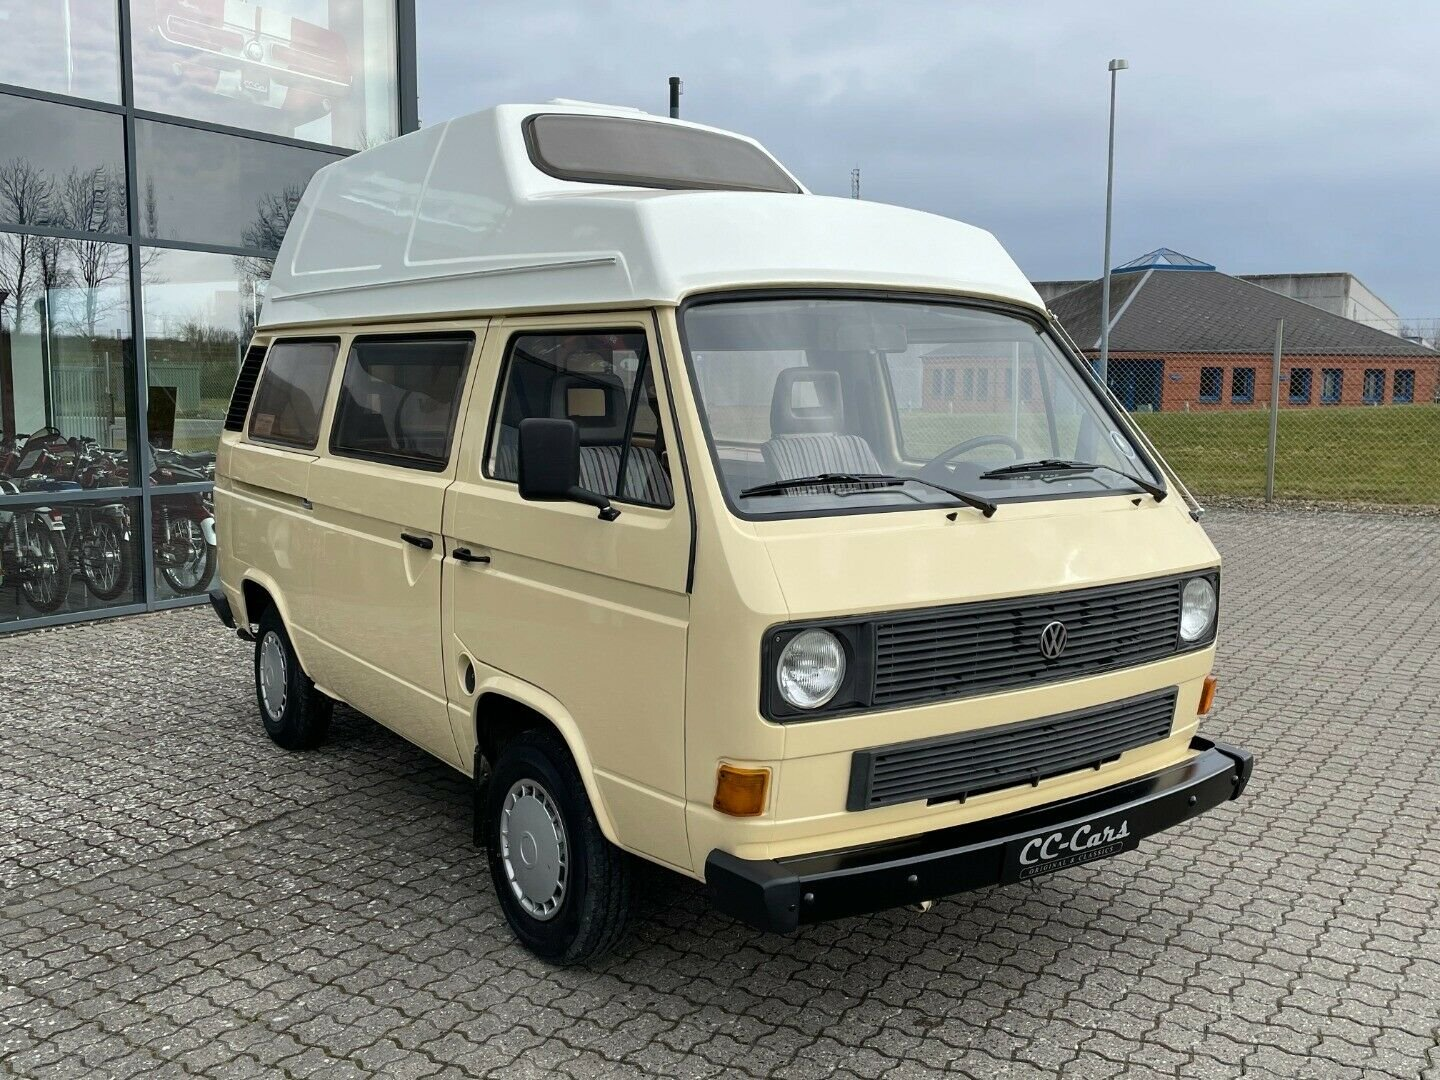 1983 Nice Westfalia! For Sale (picture 1 of 12)